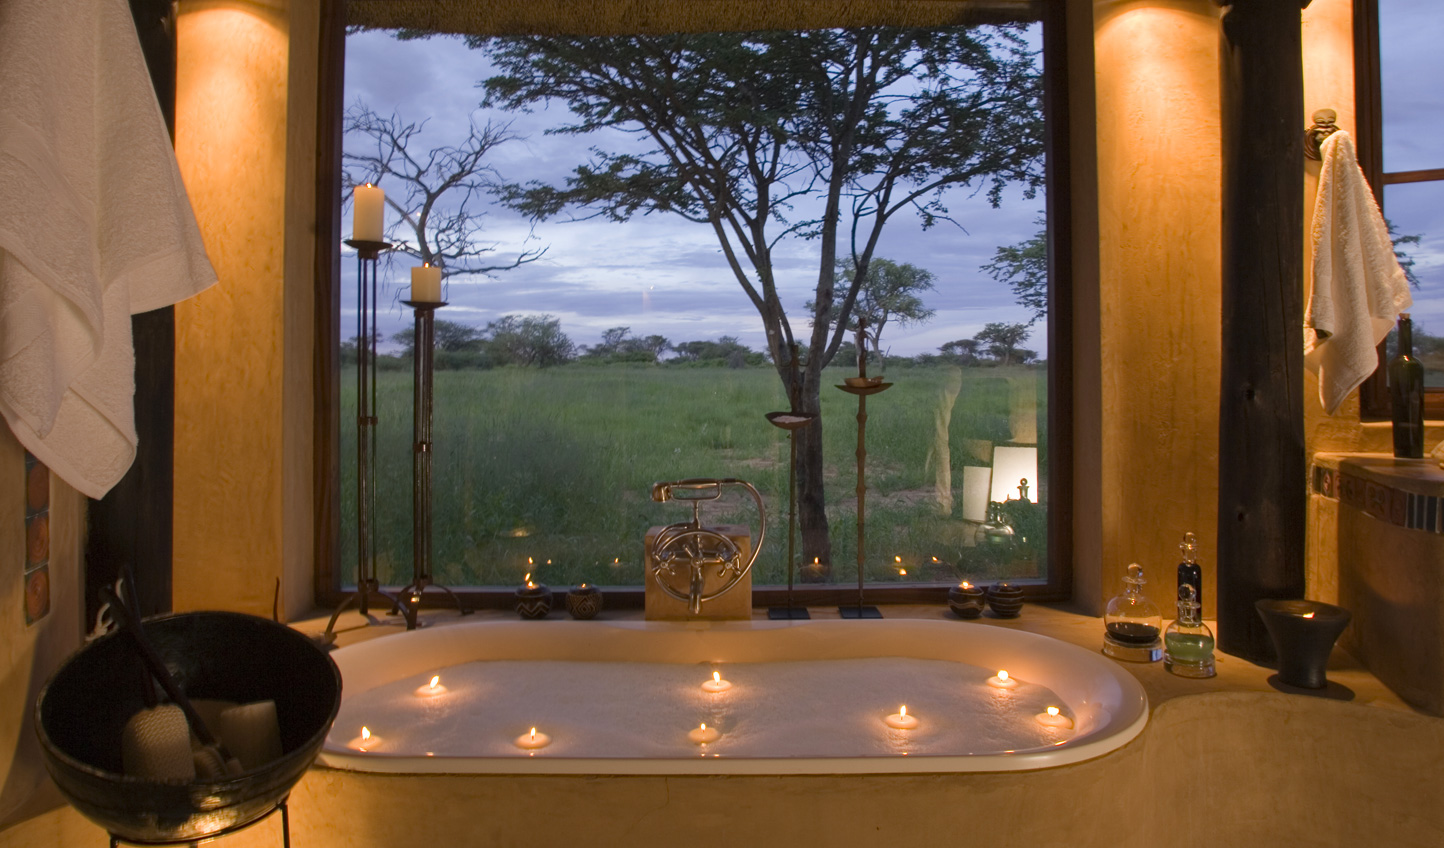 Sink into a candlelit tub and look out over the plains